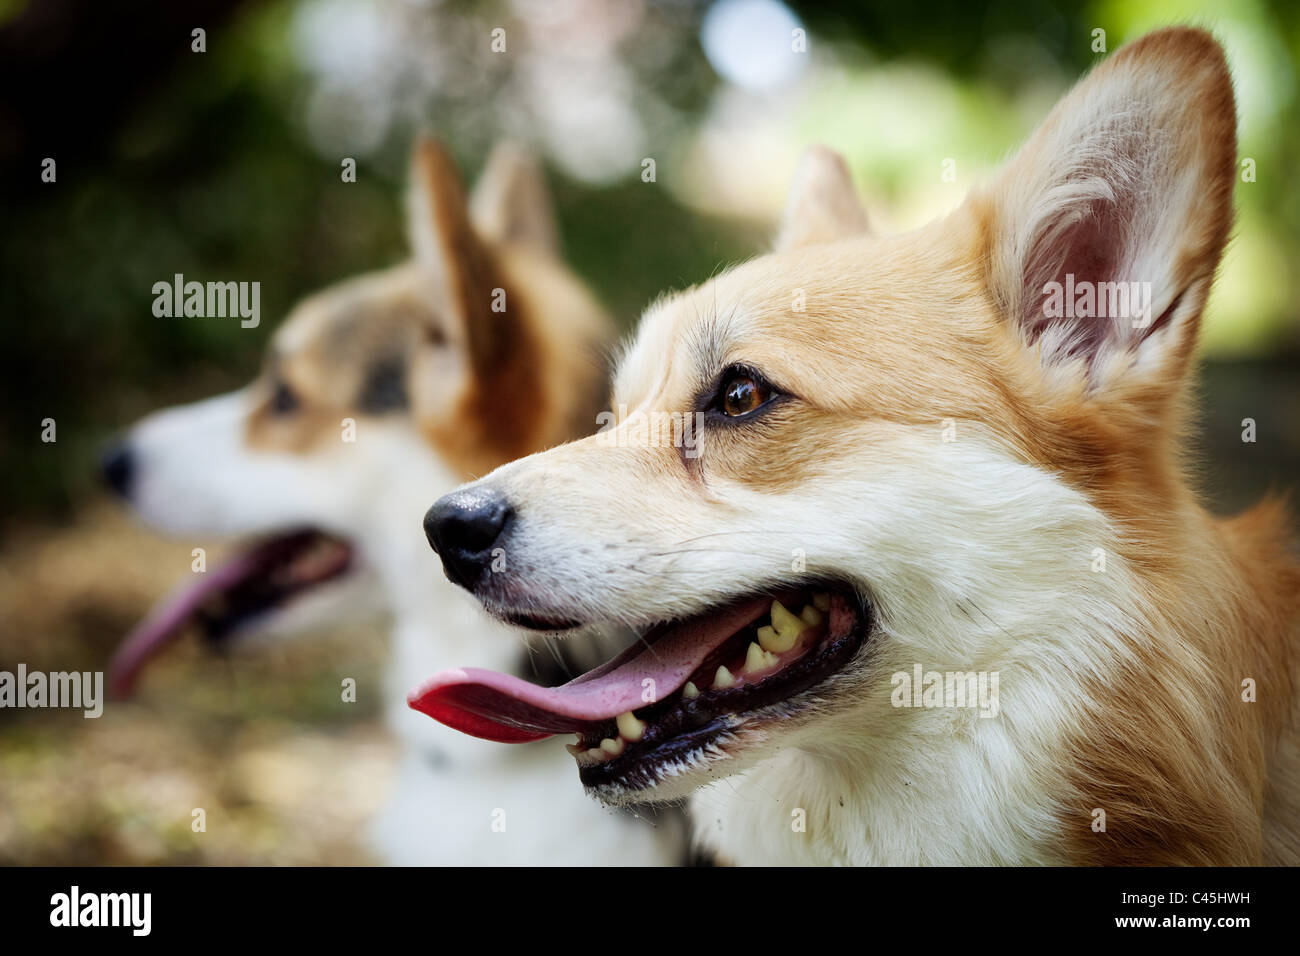 Two Pembroke Welsh Corgi dogs with their tongues out, one dog sharp in foreground and one dog blurred out in the - Stock Image